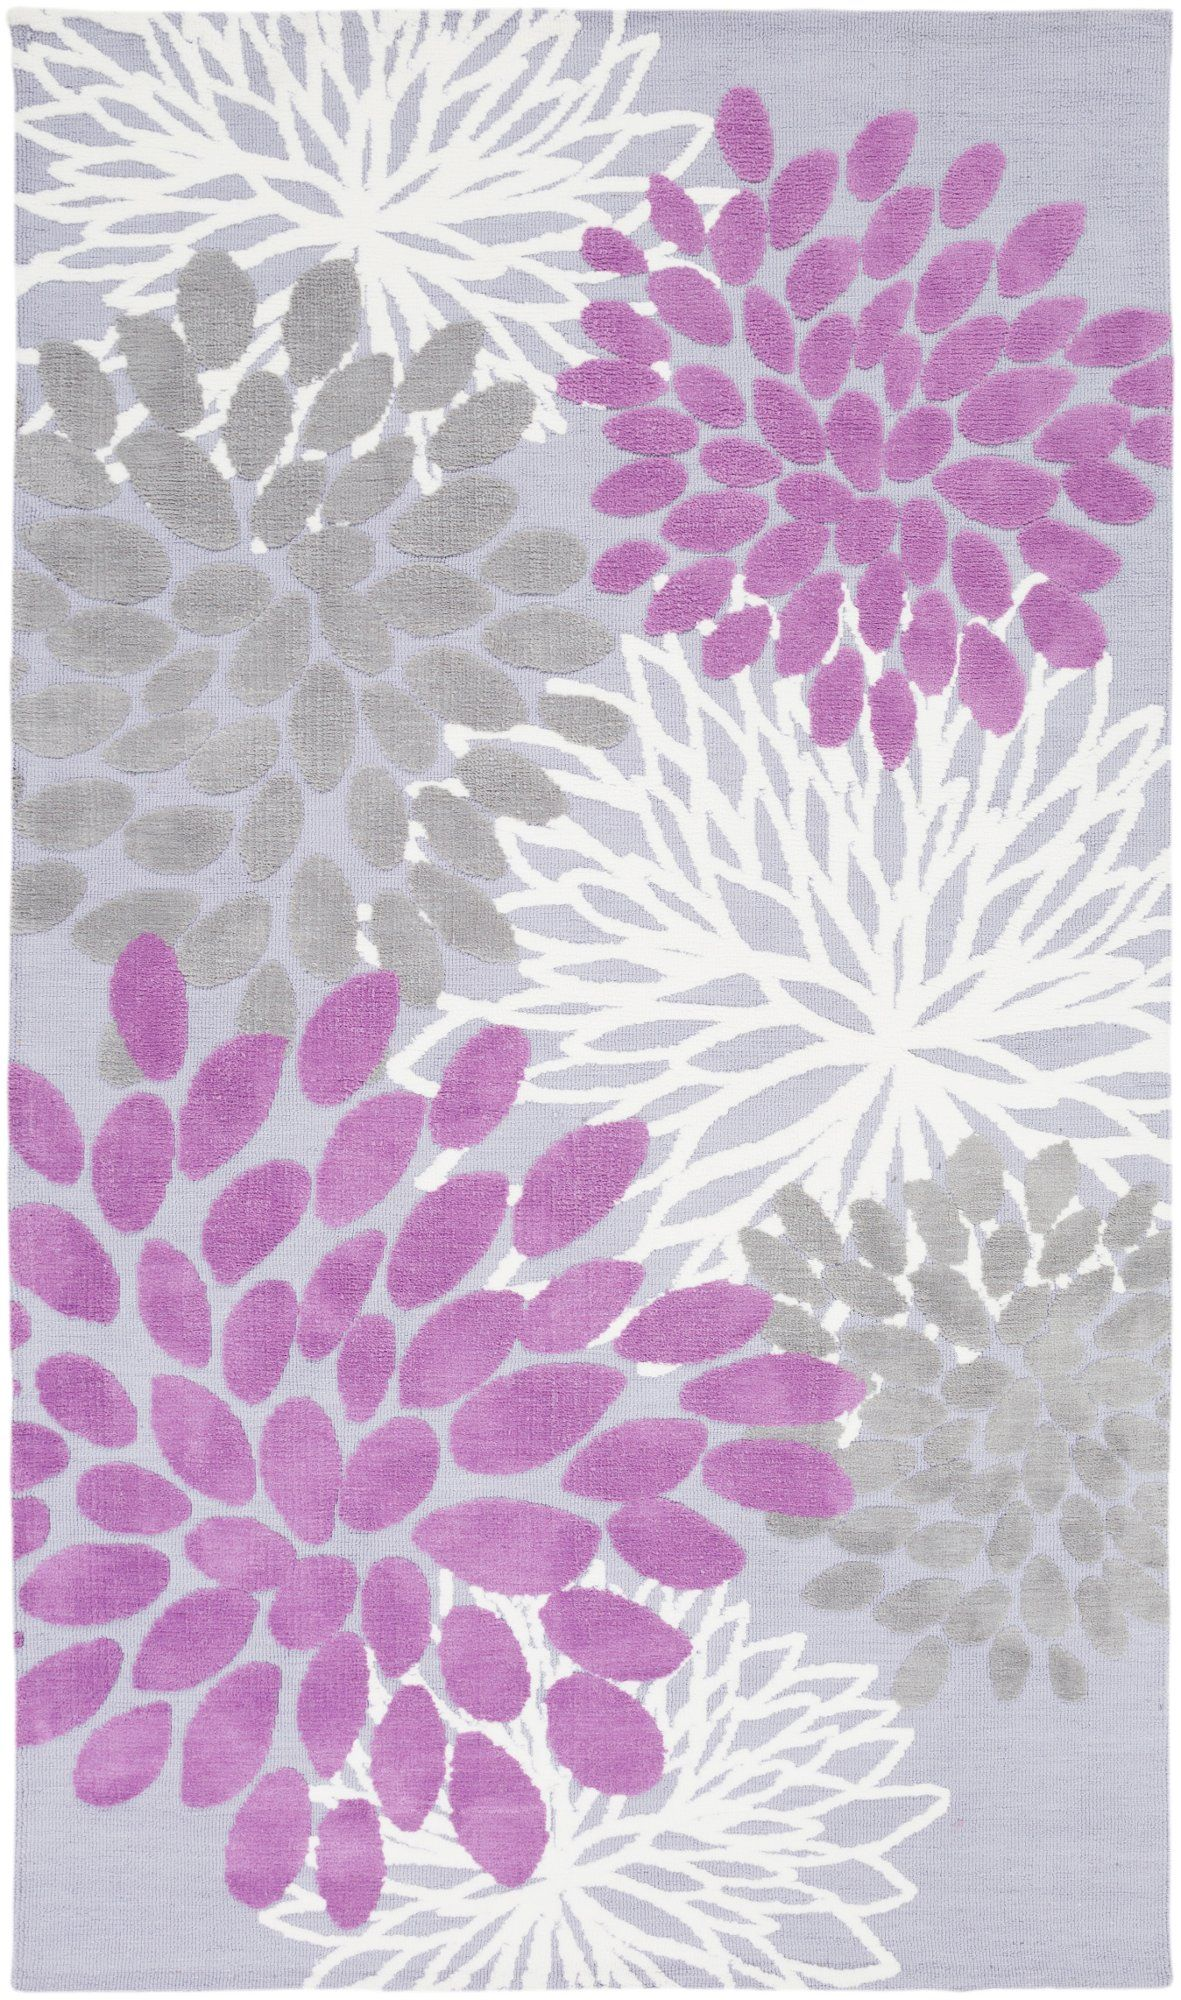 8 X 11 Large Floral Purple And Gray Kids Area Rug Abigail In 2020 Floral Area Rugs Kids Area Rugs Kids Rugs